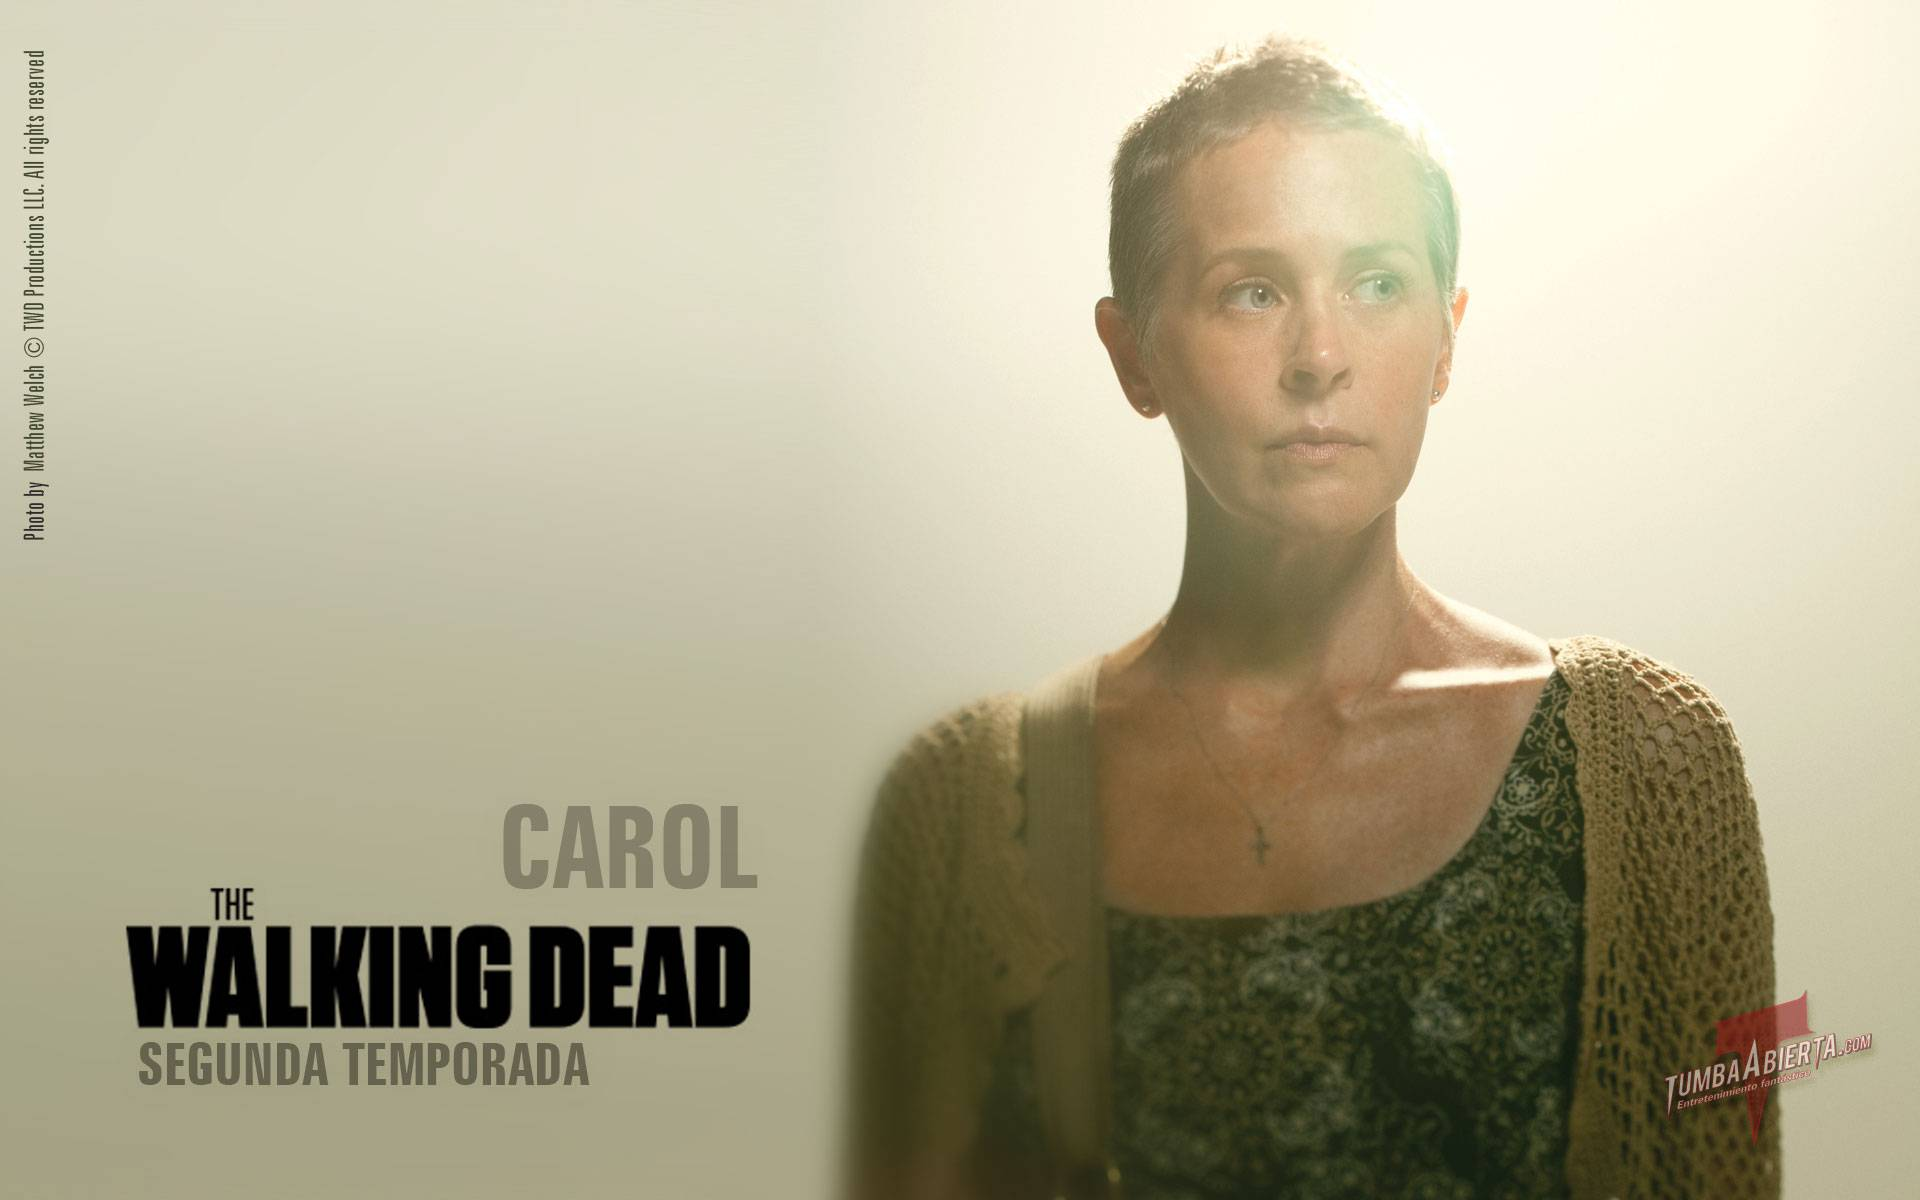 167646-the-walking-dead-carol.jpg